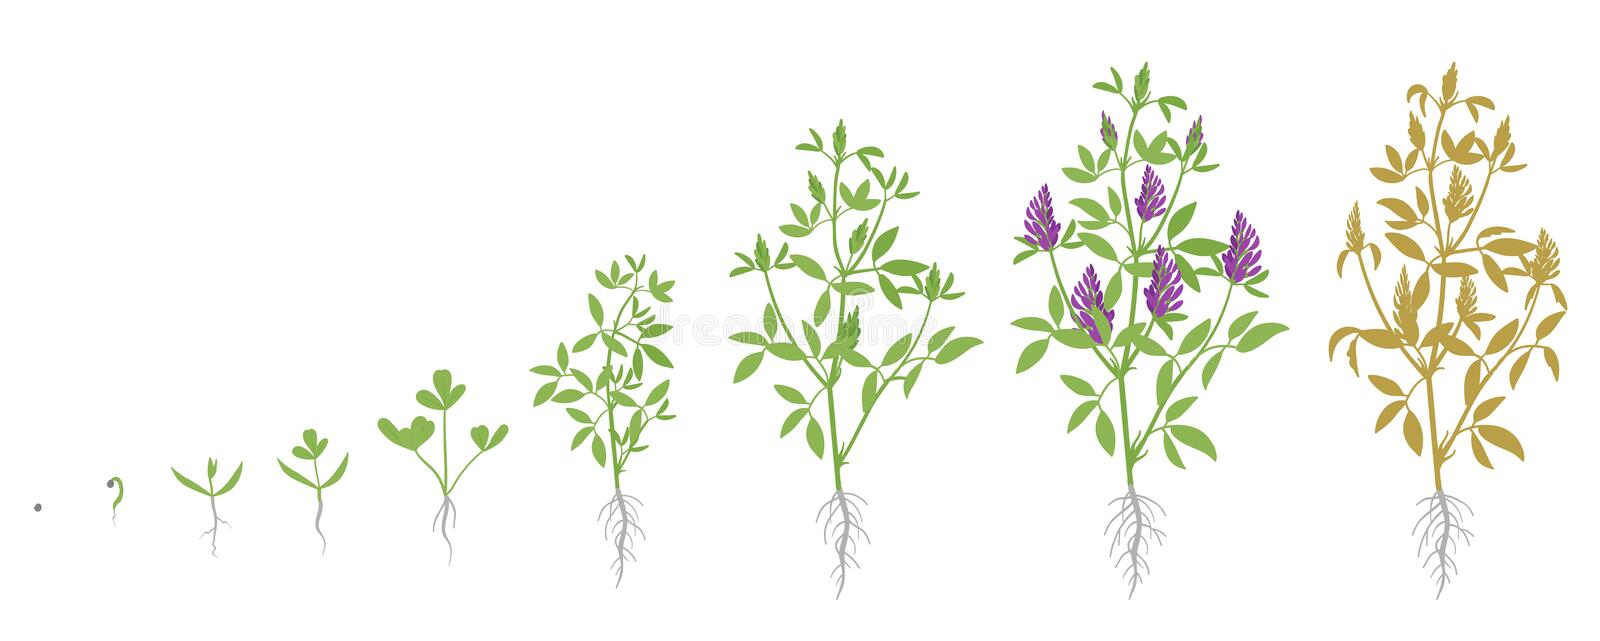 Growth stages of Alfalfa plant. Vector flat illustration. Medicago sativa. Lucerne grown life cycle. Important forage crop used for grazing, hay and silage, as stock illustration